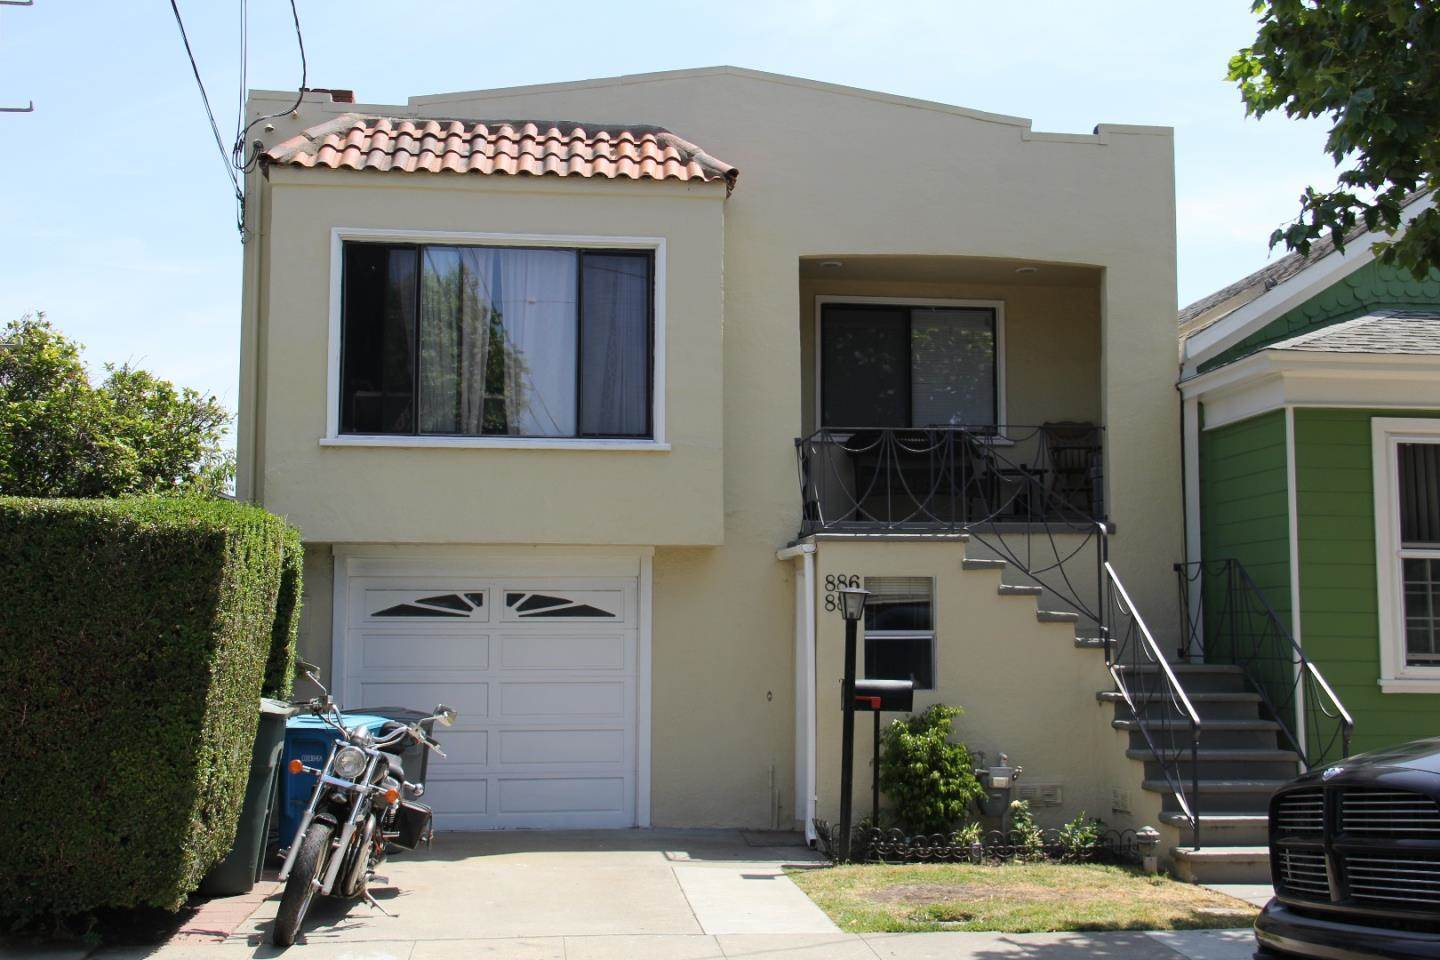 886 Easton Ave, San Bruno, CA 94066